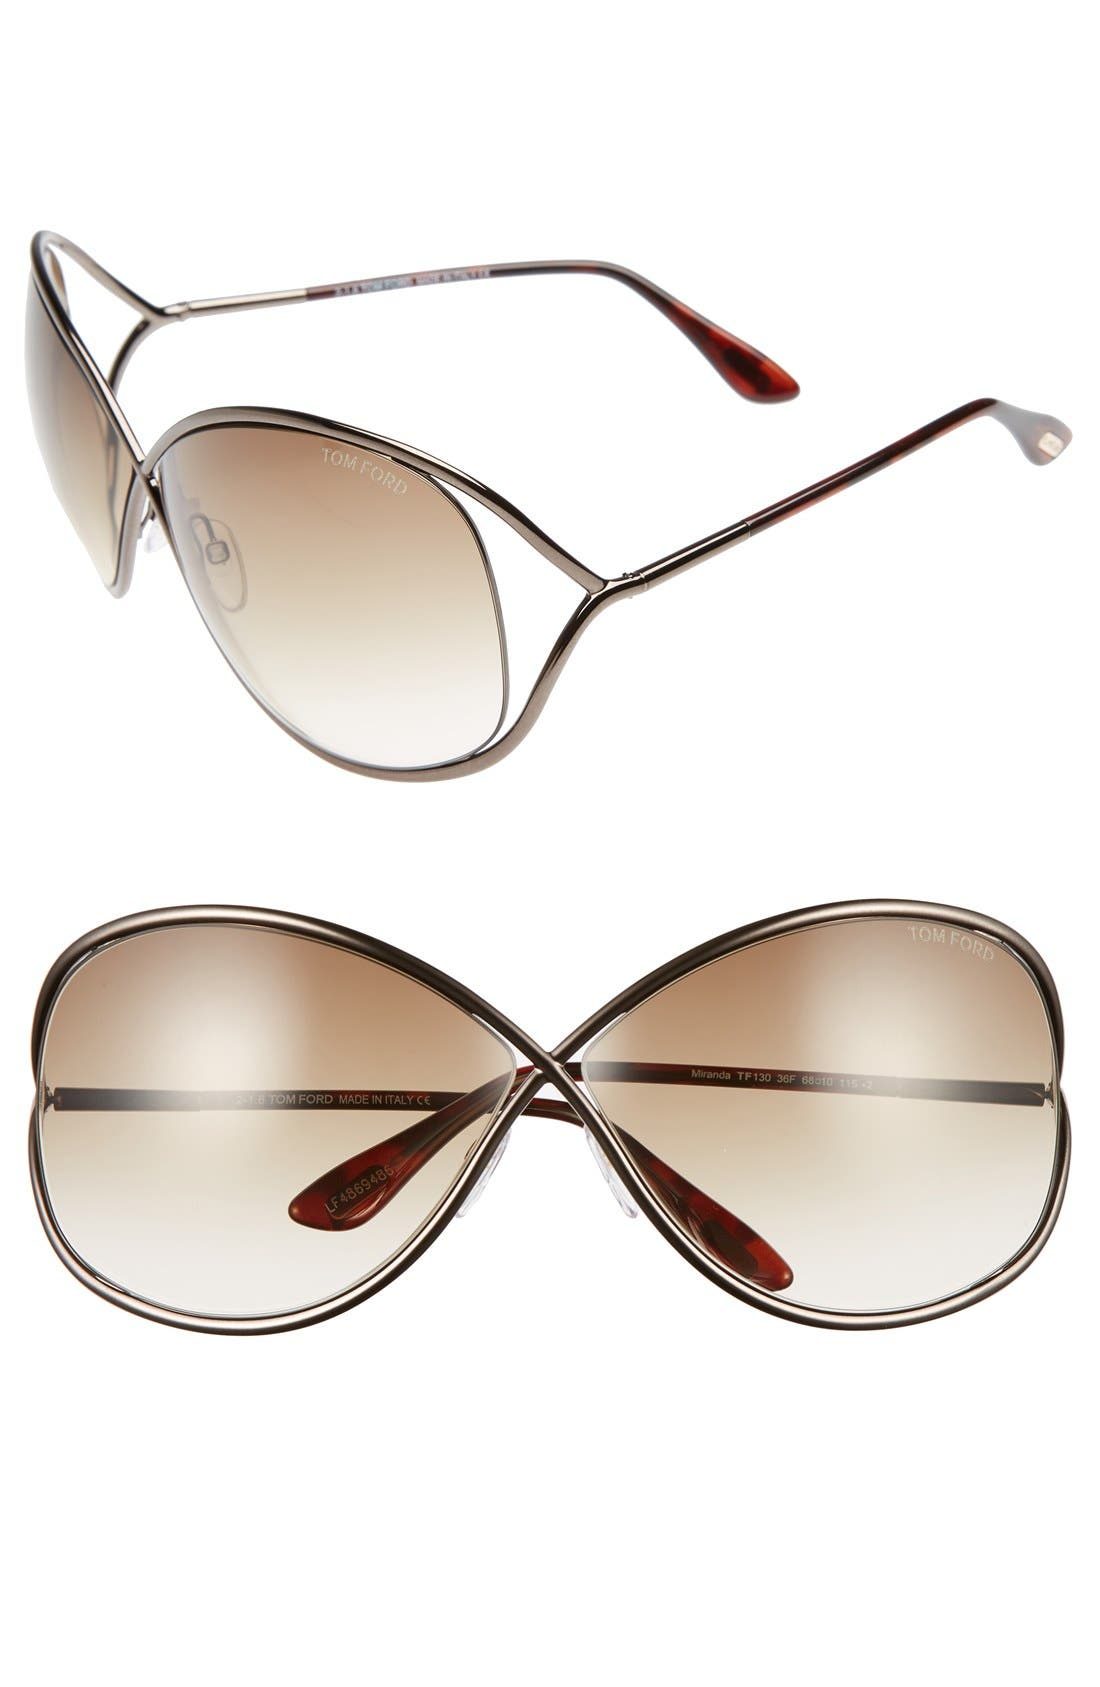 Main Image - Tom Ford Miranda 68mm Open Temple Oversize Metal Sunglasses